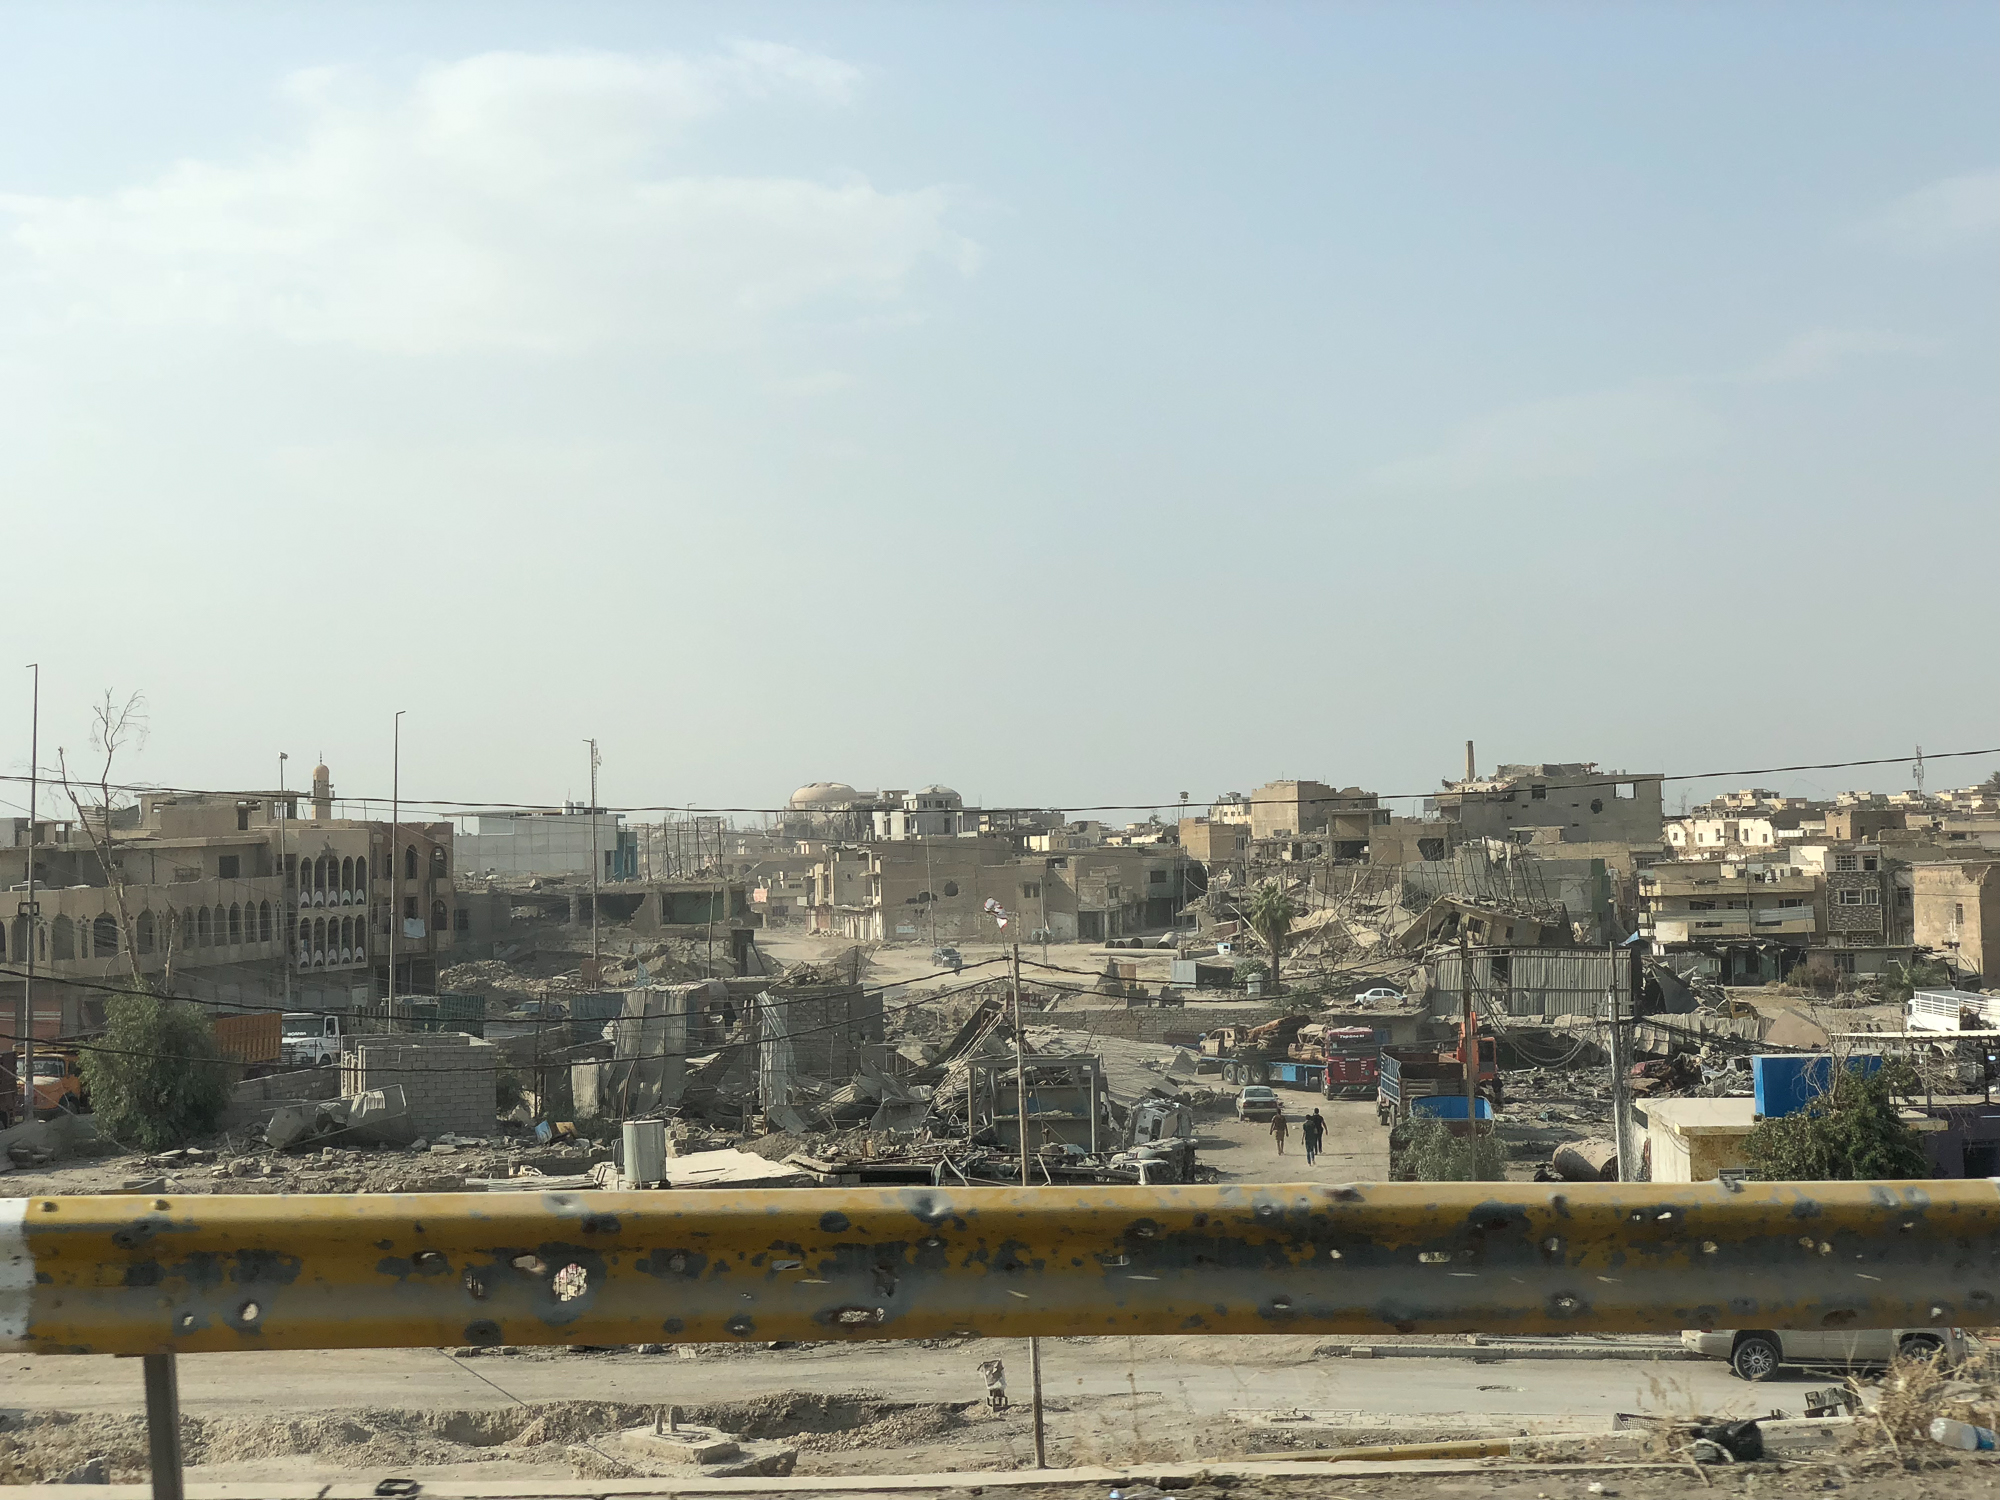 The old part of Mosul, still destroyed